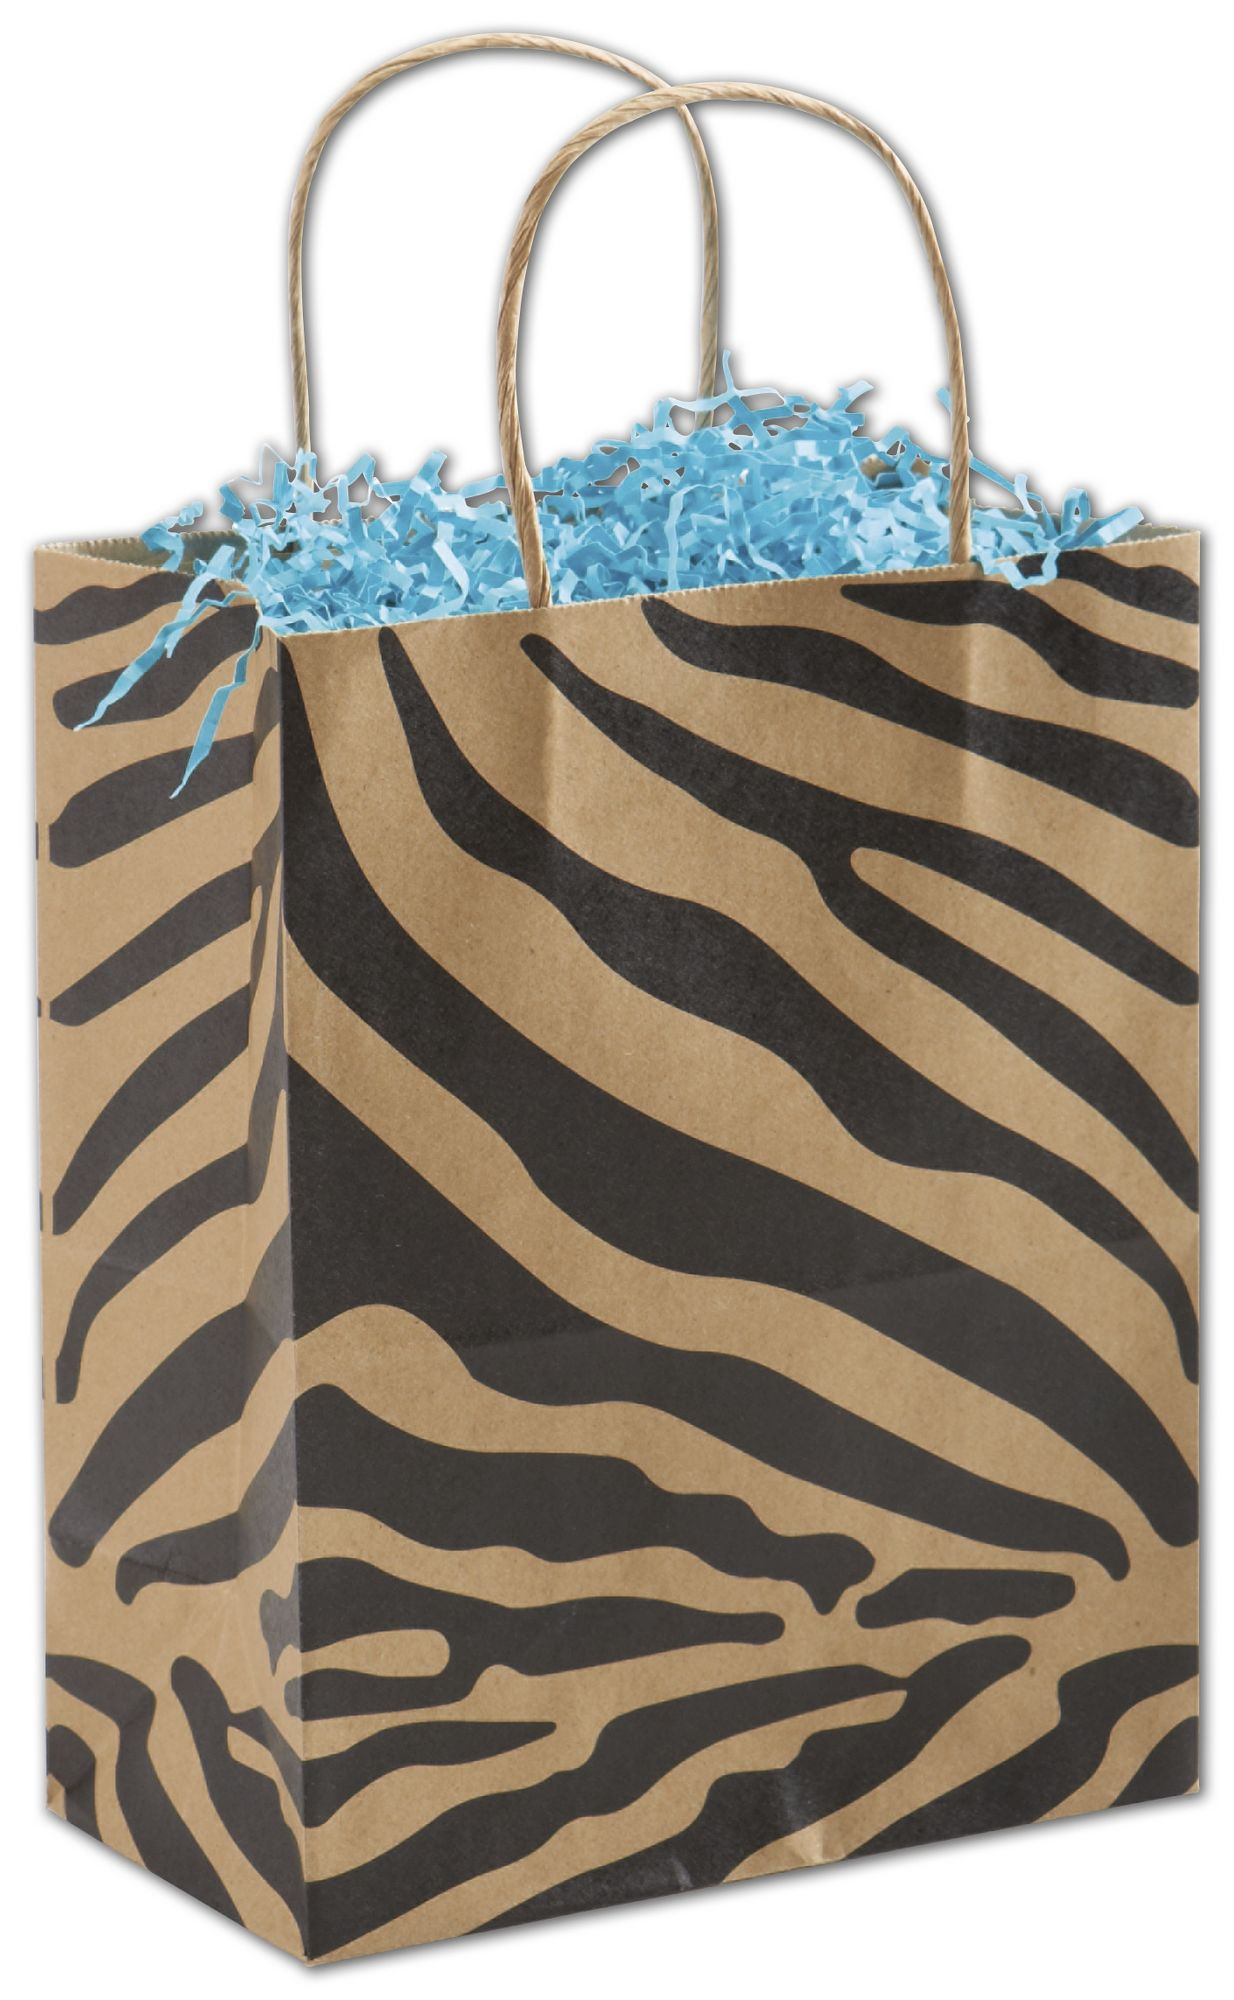 These sturdy kraft bags with a bold black zebra print make packaging your purchases or gifts stylishly.